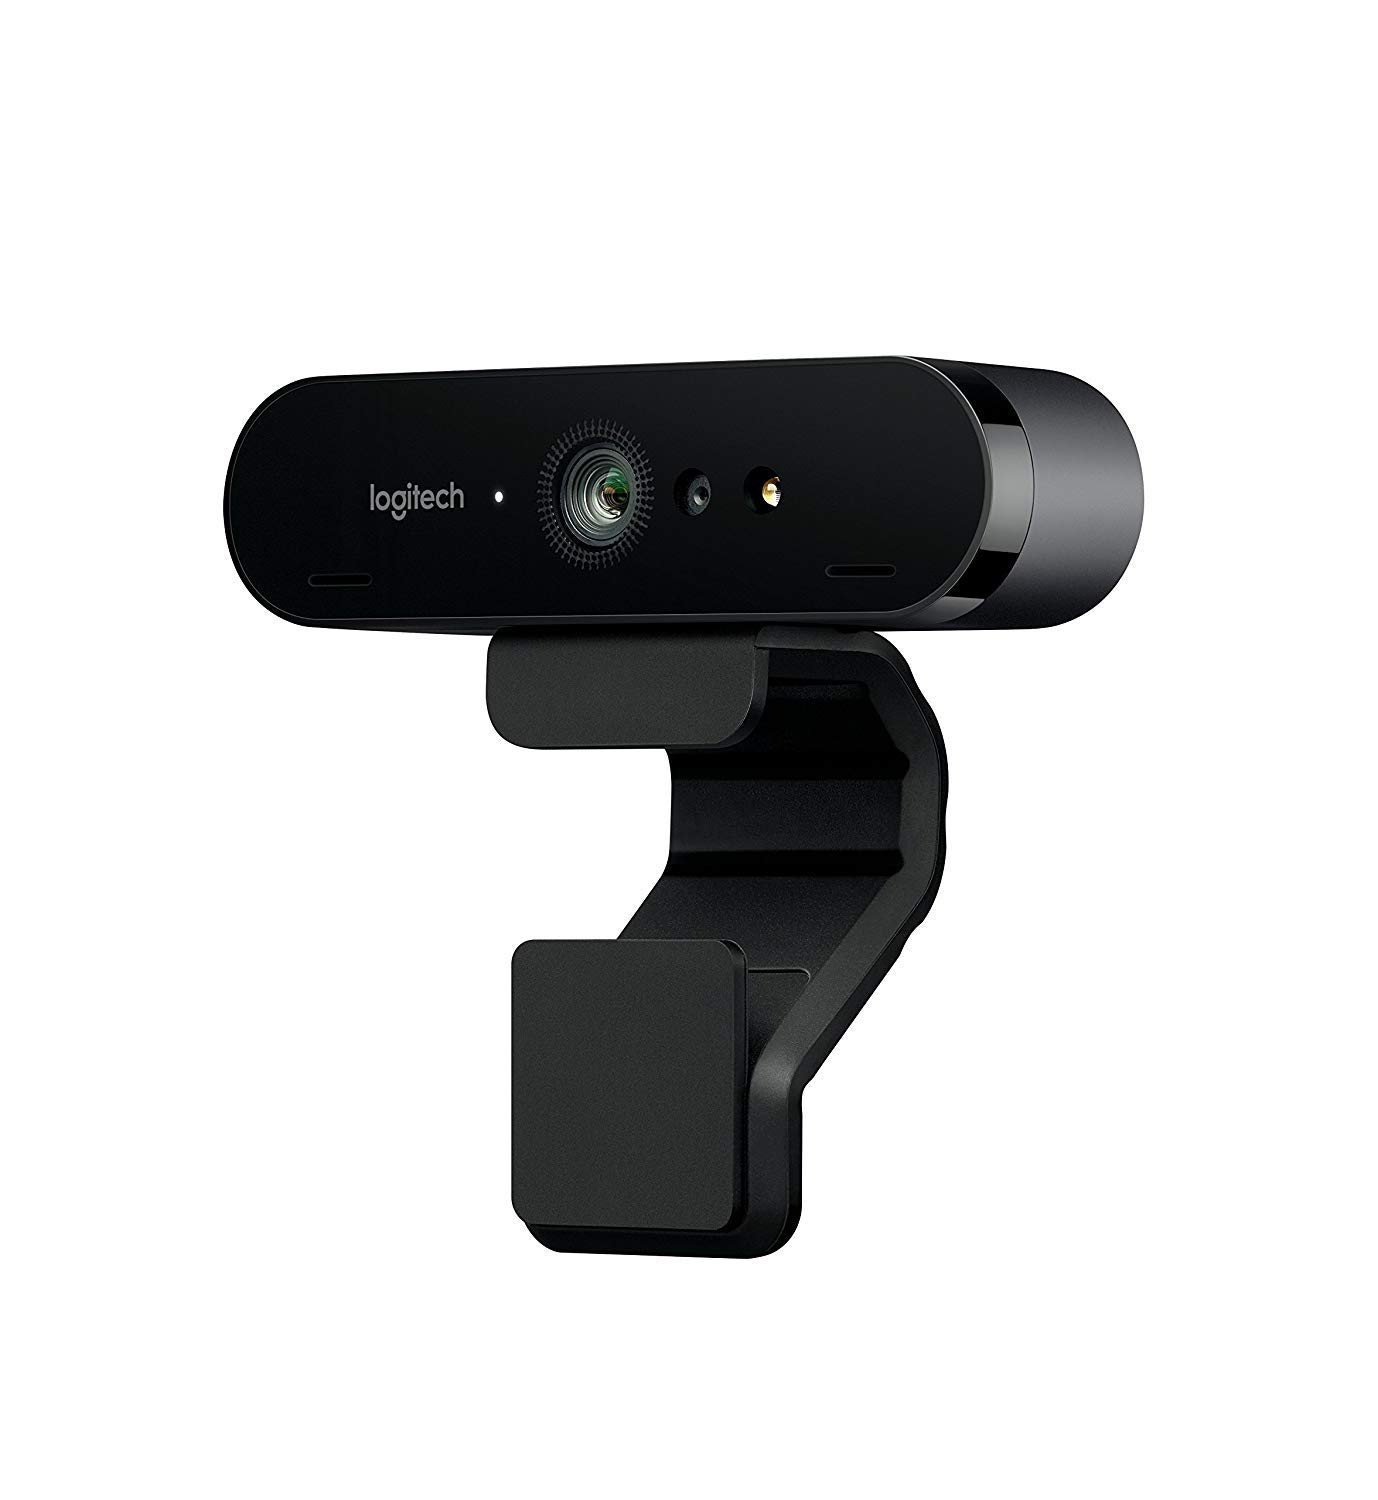 Logitech BRIO - Ultra HD Webcam for Video Conferencing, Recording, and Streaming by Logitech (Image #2)